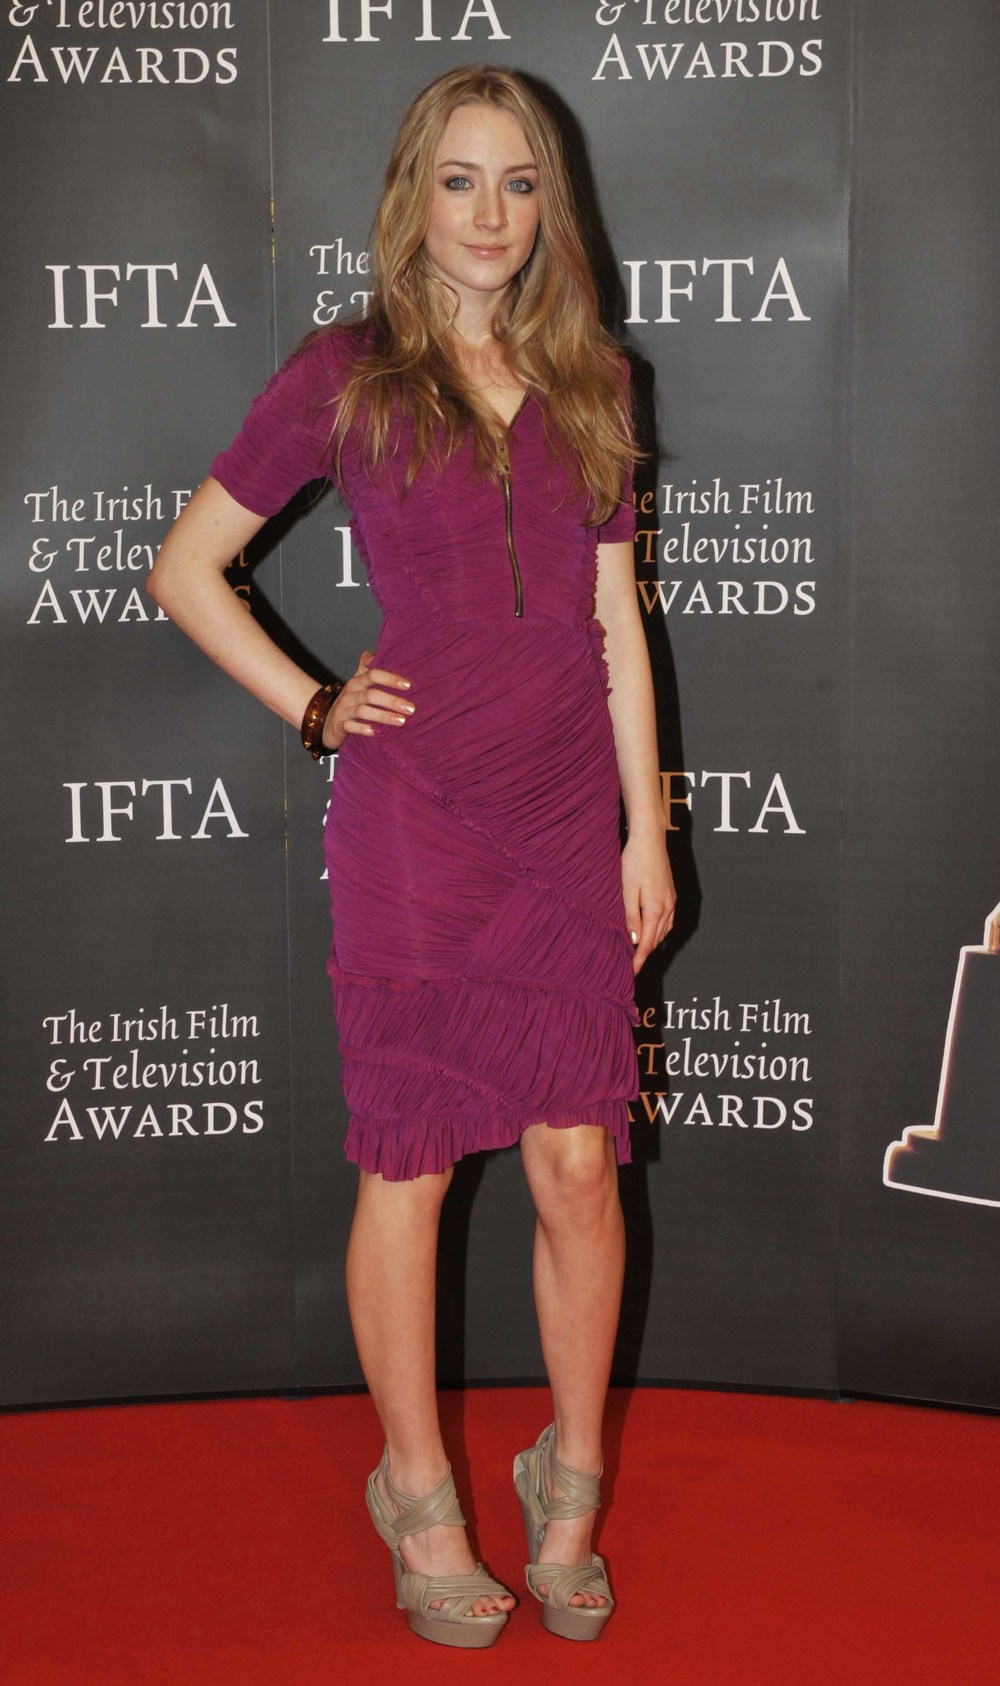 756 IFTA Awards.jpg